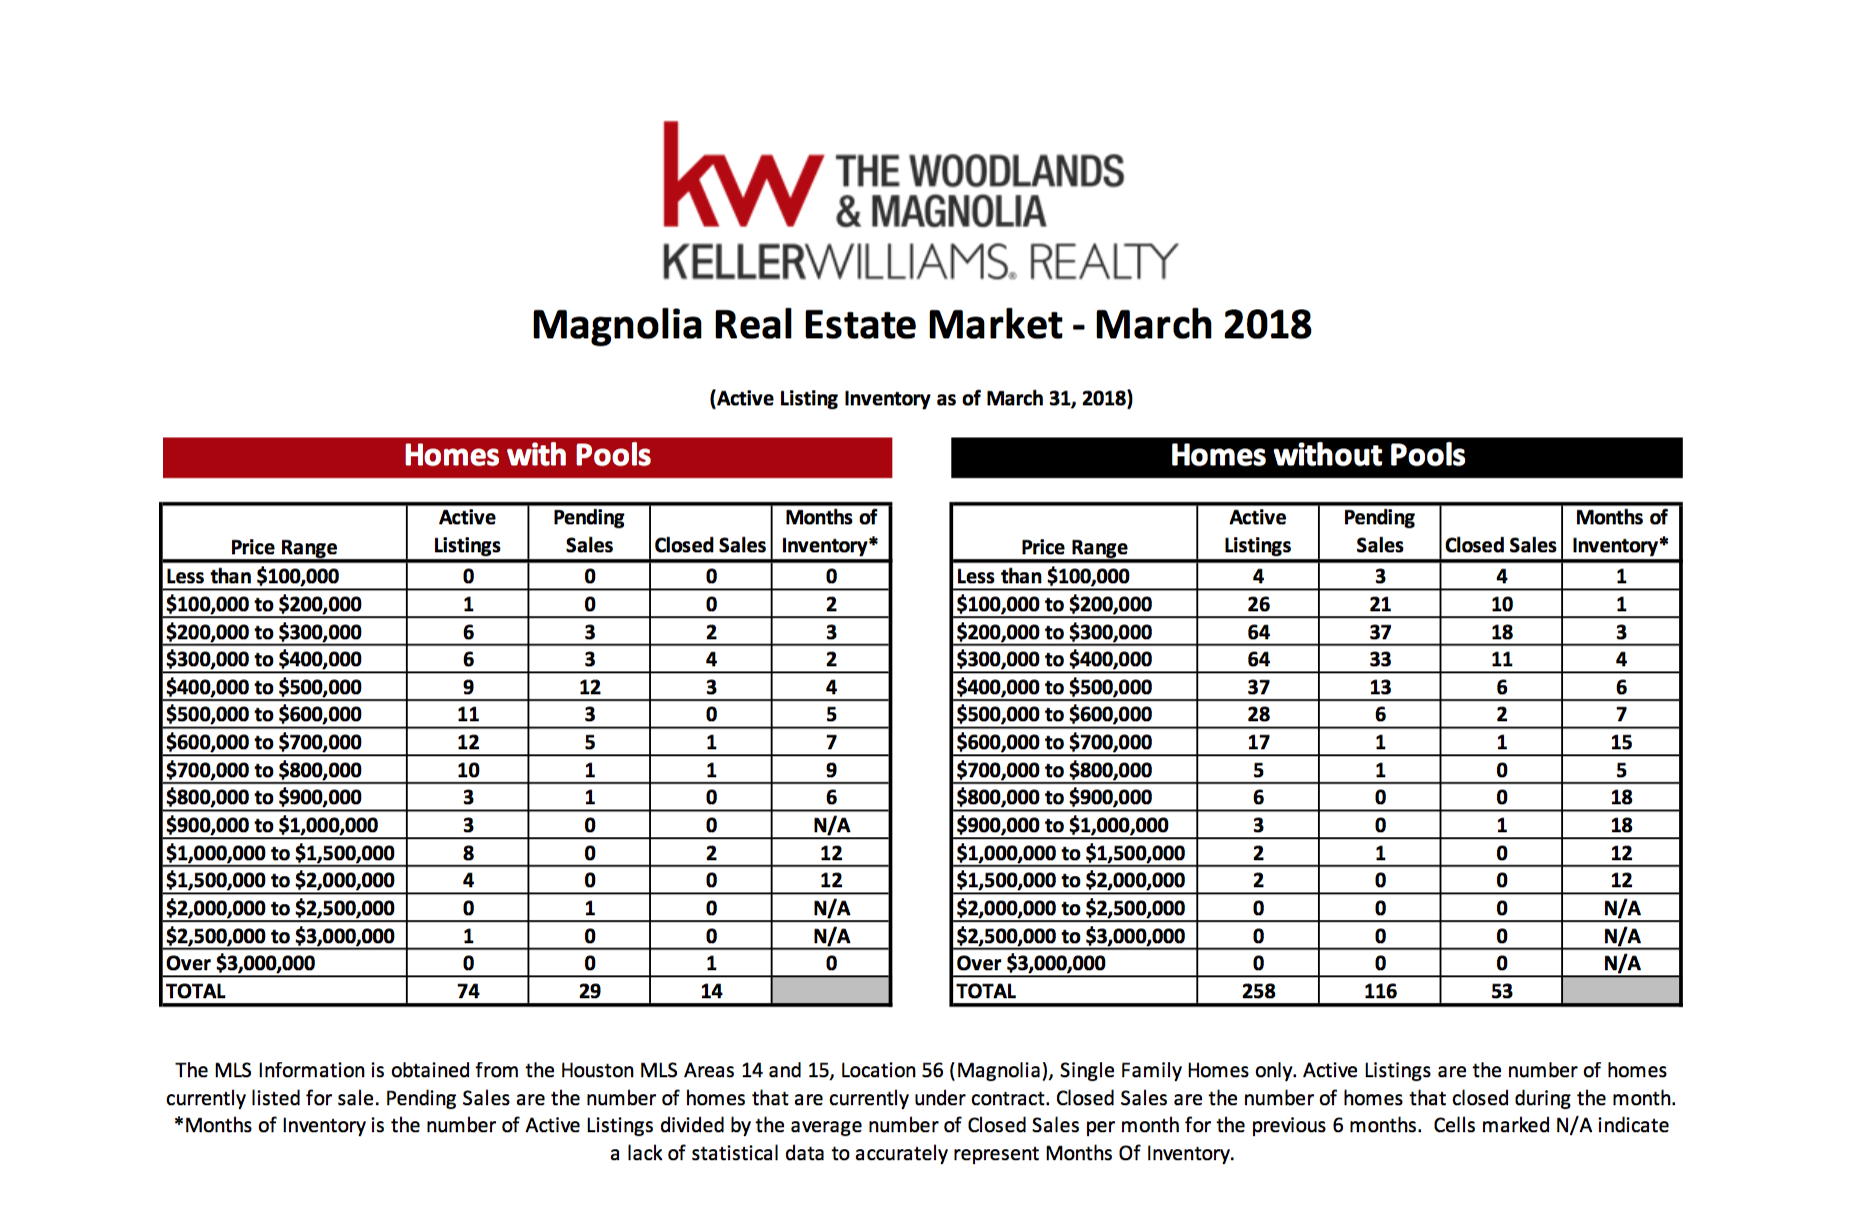 , March 2018 Marketwatch Report – Magnolia, KW Woodlands